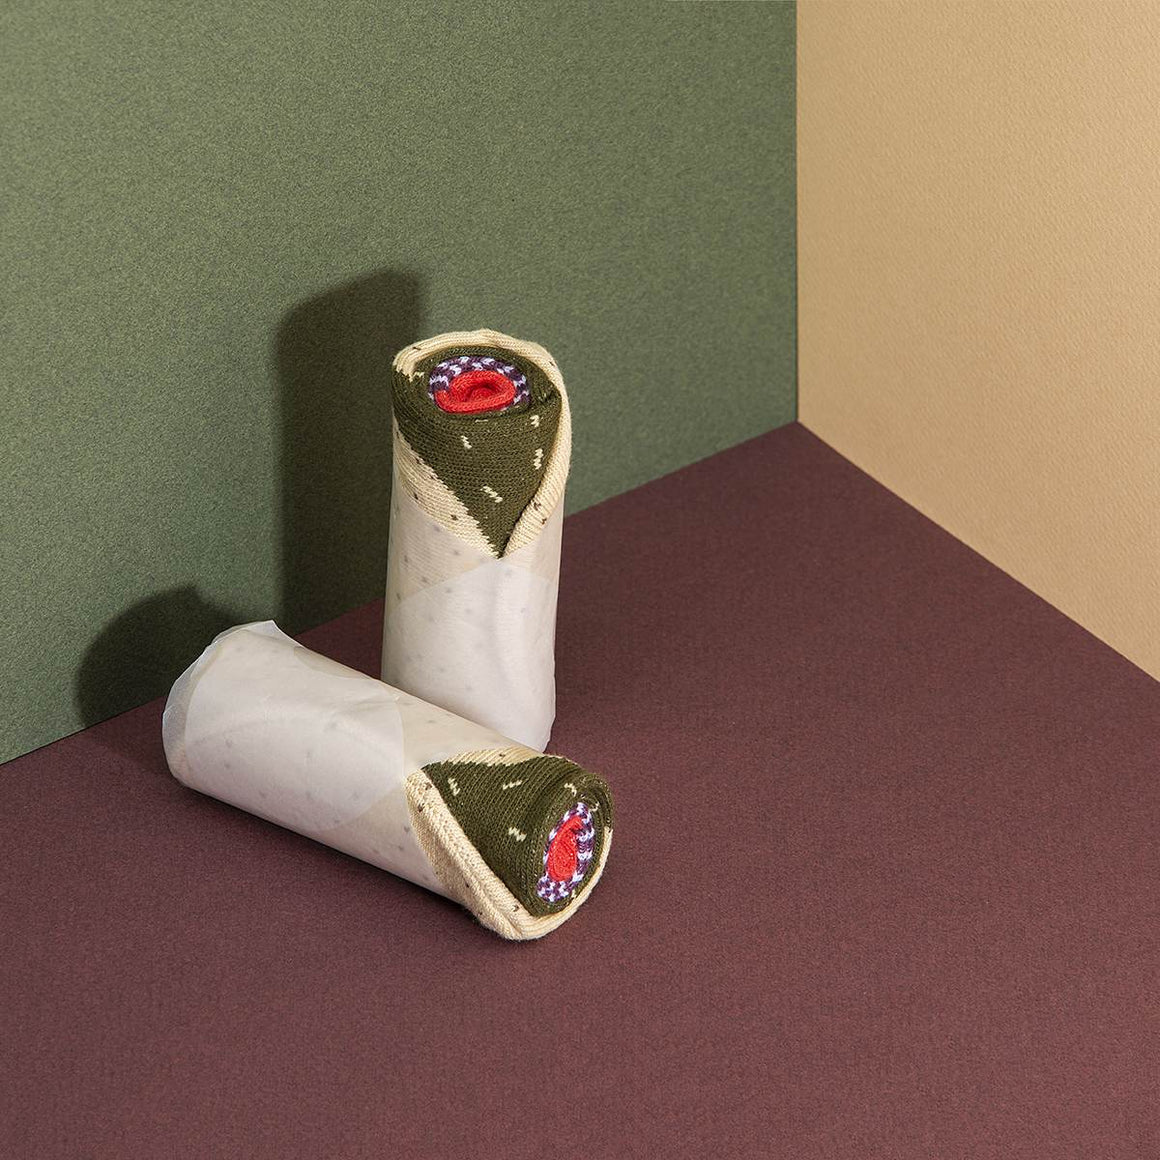 A pair of socks rolled and wrapped in paper to look like a burrito.